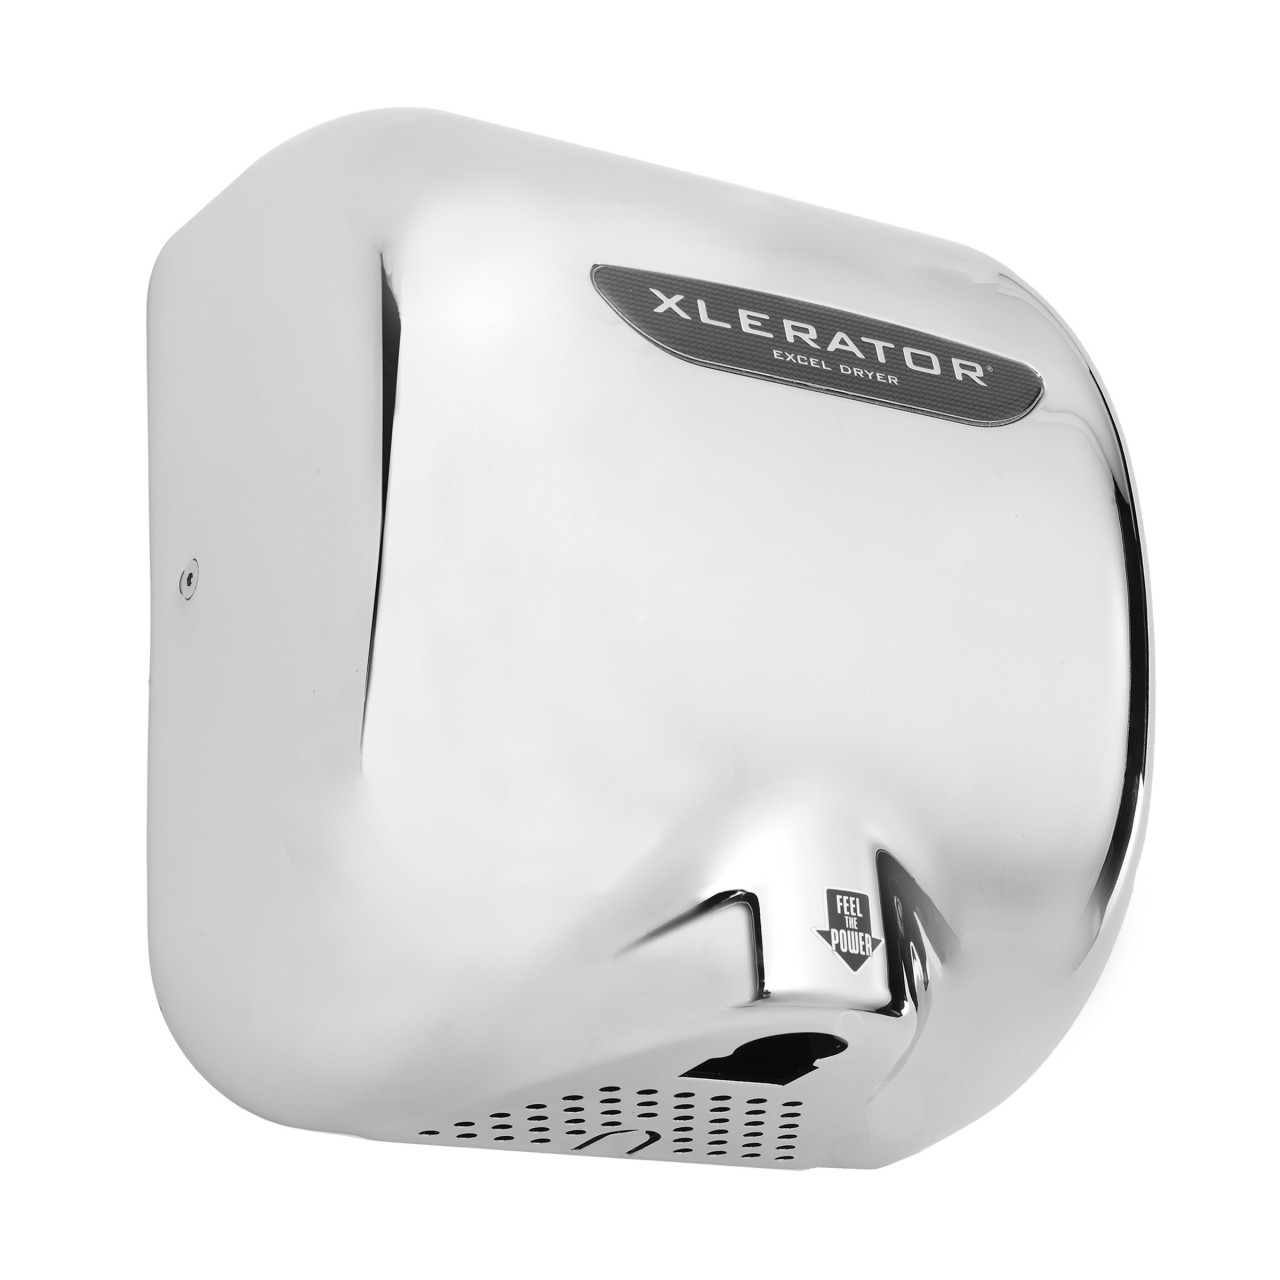 excel xlerator hand dryer xlc with chrome cover - Excel Hand Dryer